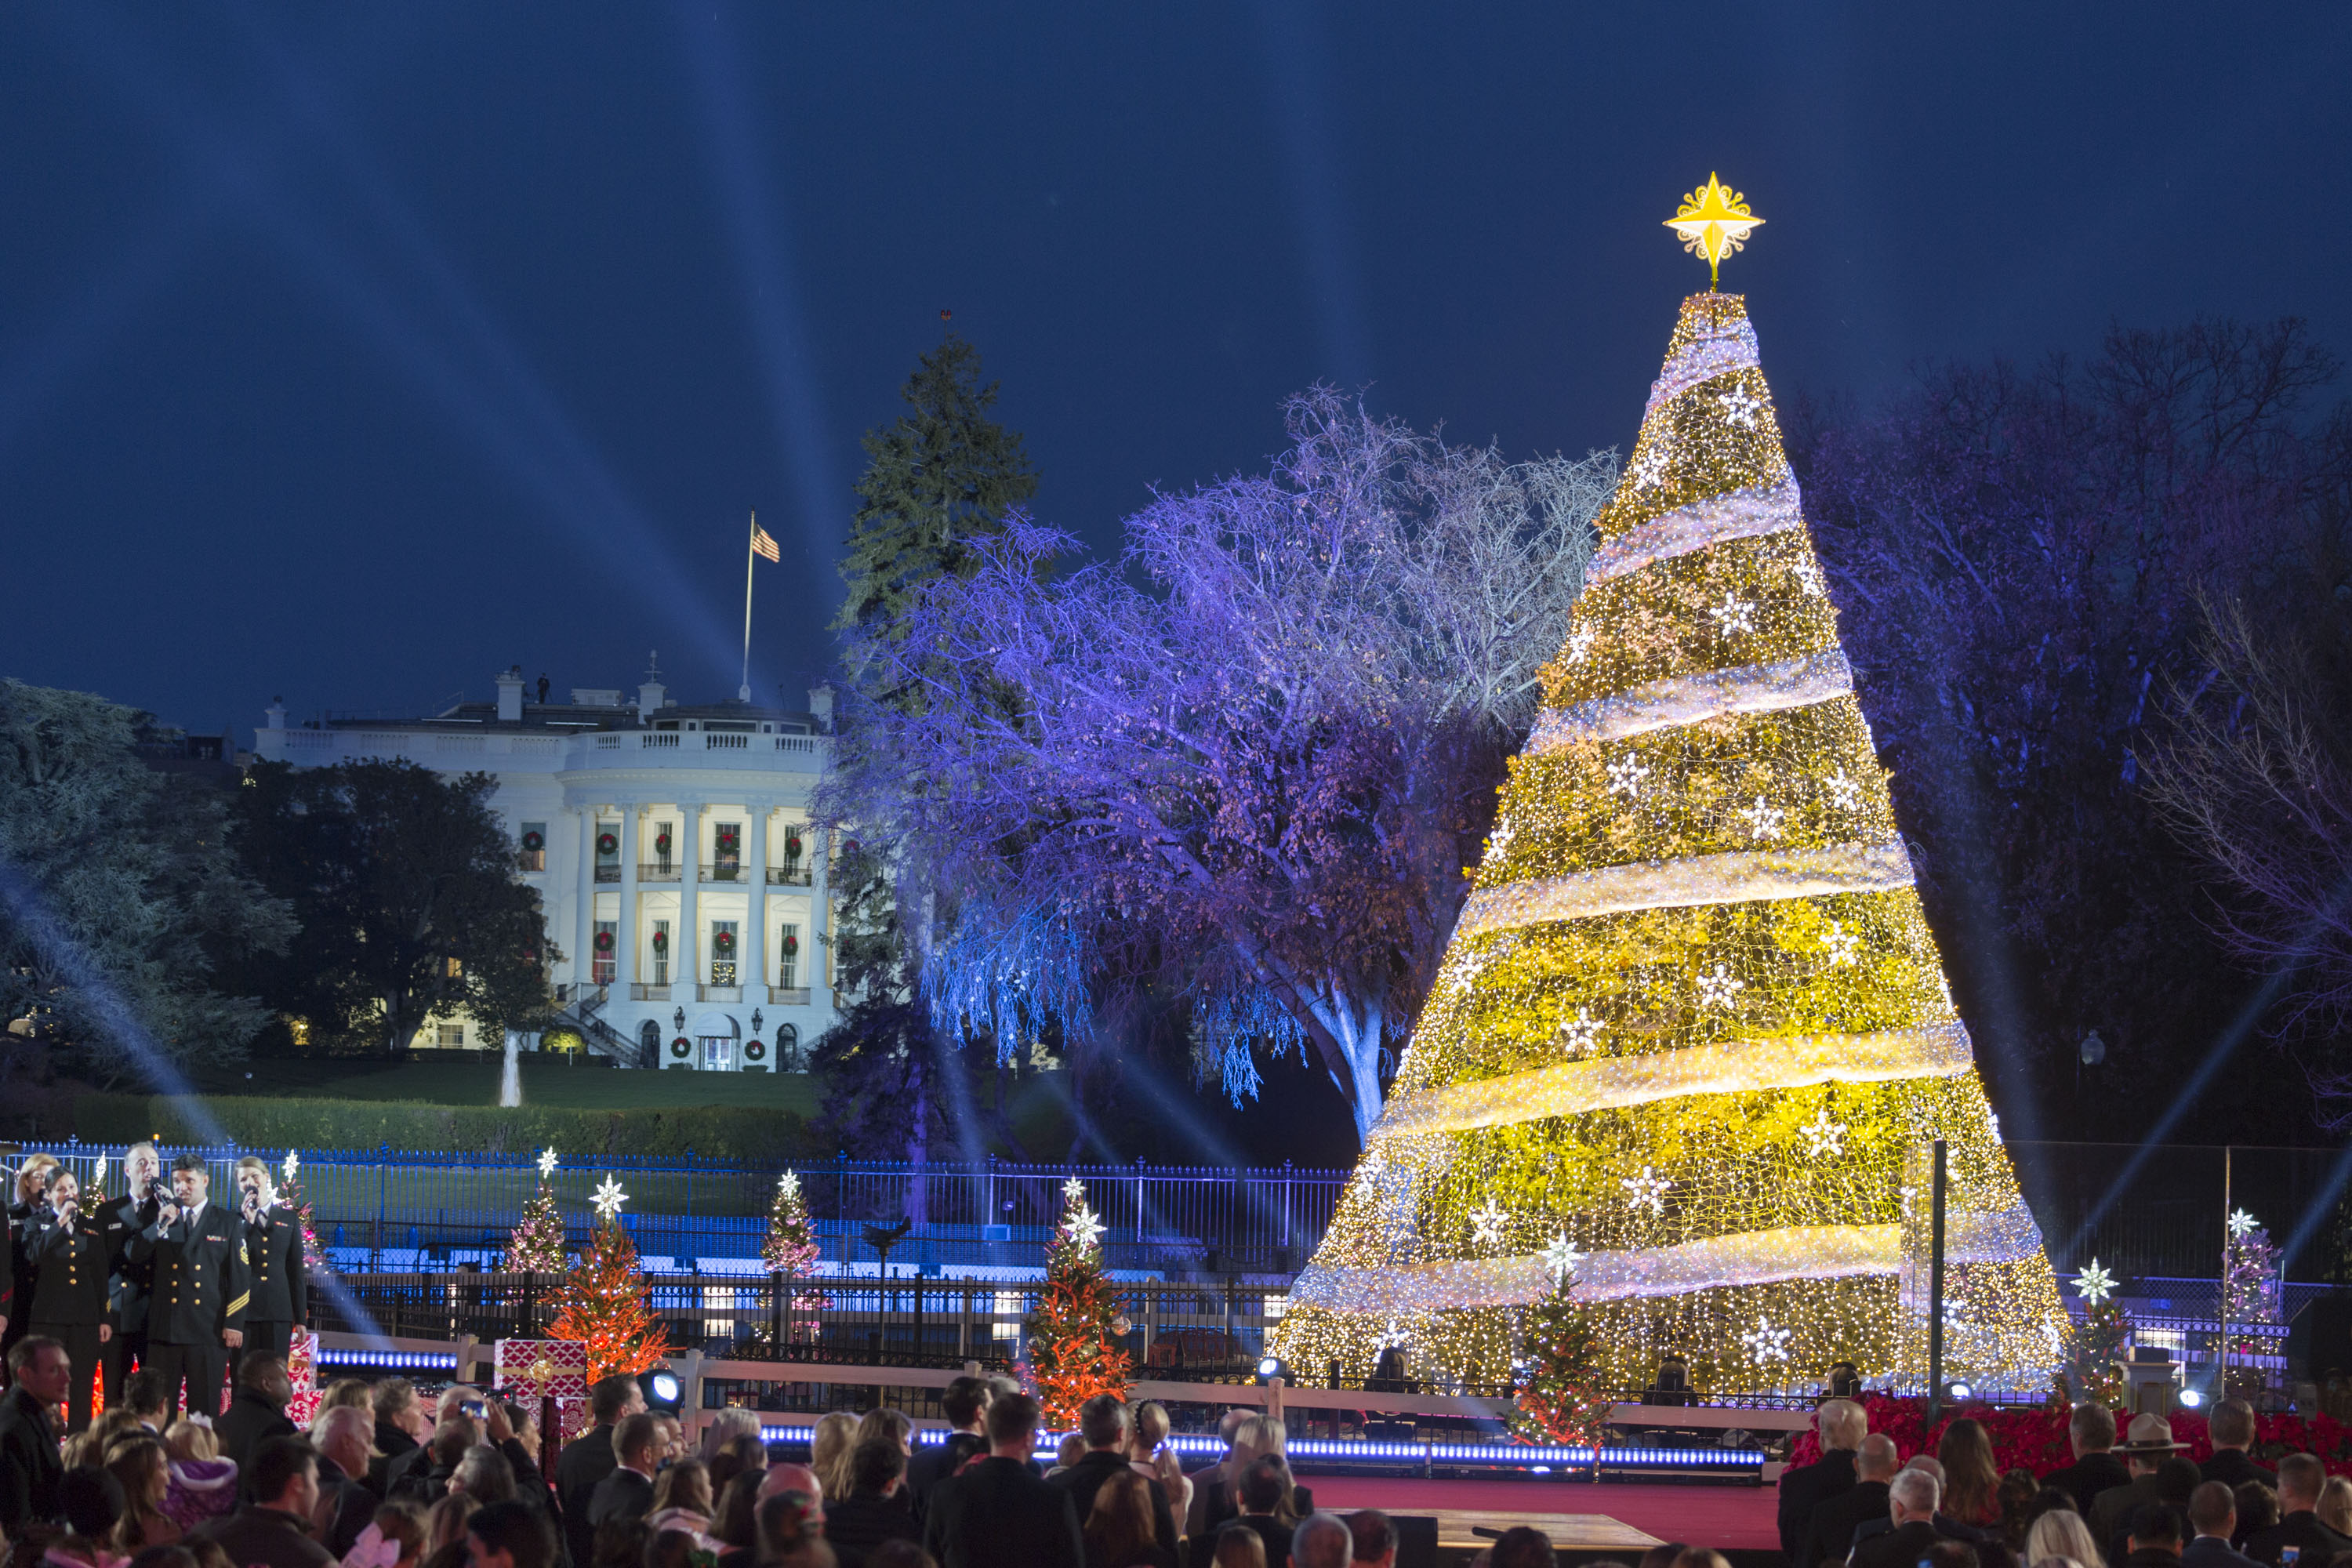 Christmas Celebration In America.Trump Reminds America Christmas Is About The Celebration Of